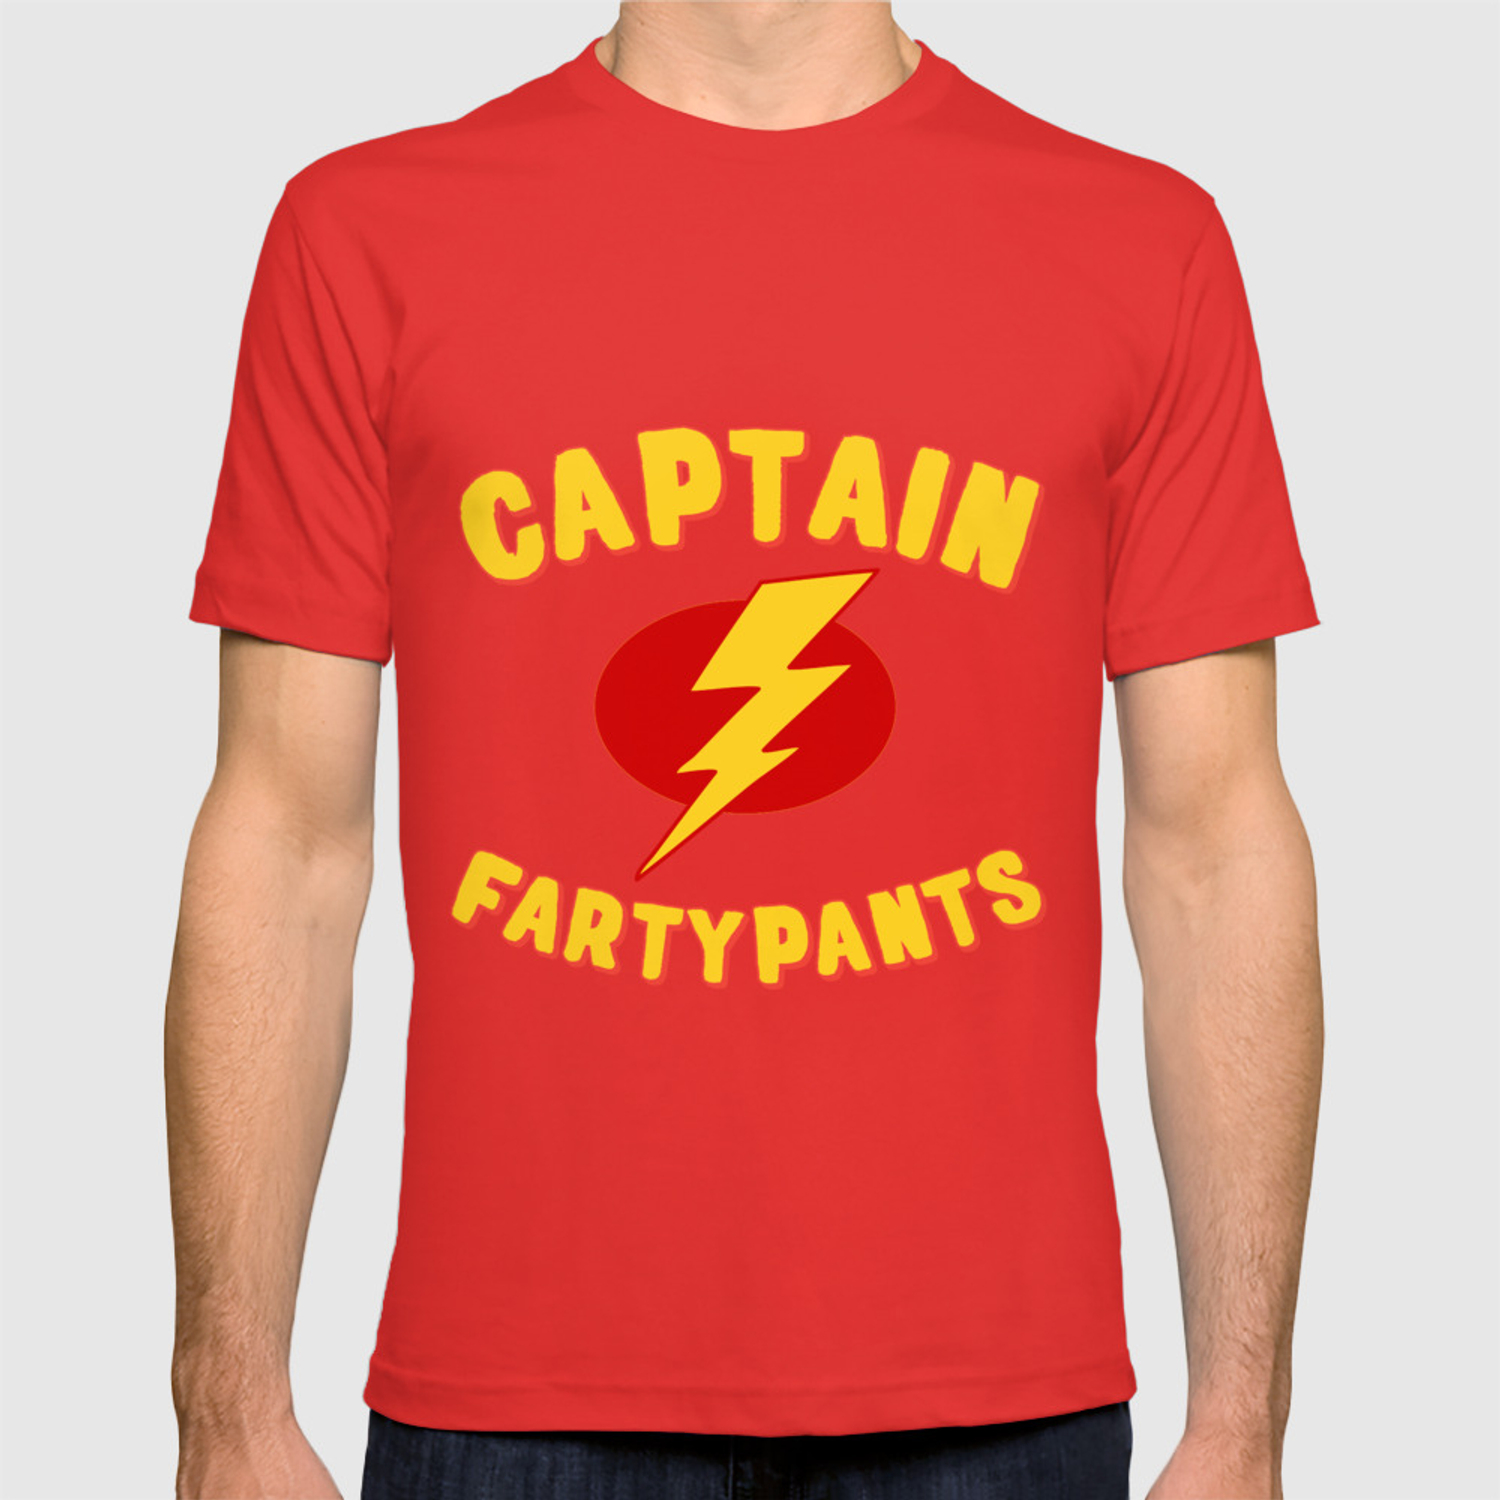 d6ca1f5aa Captain Fartypants Funny Fart T-shirt by djhemp | Society6